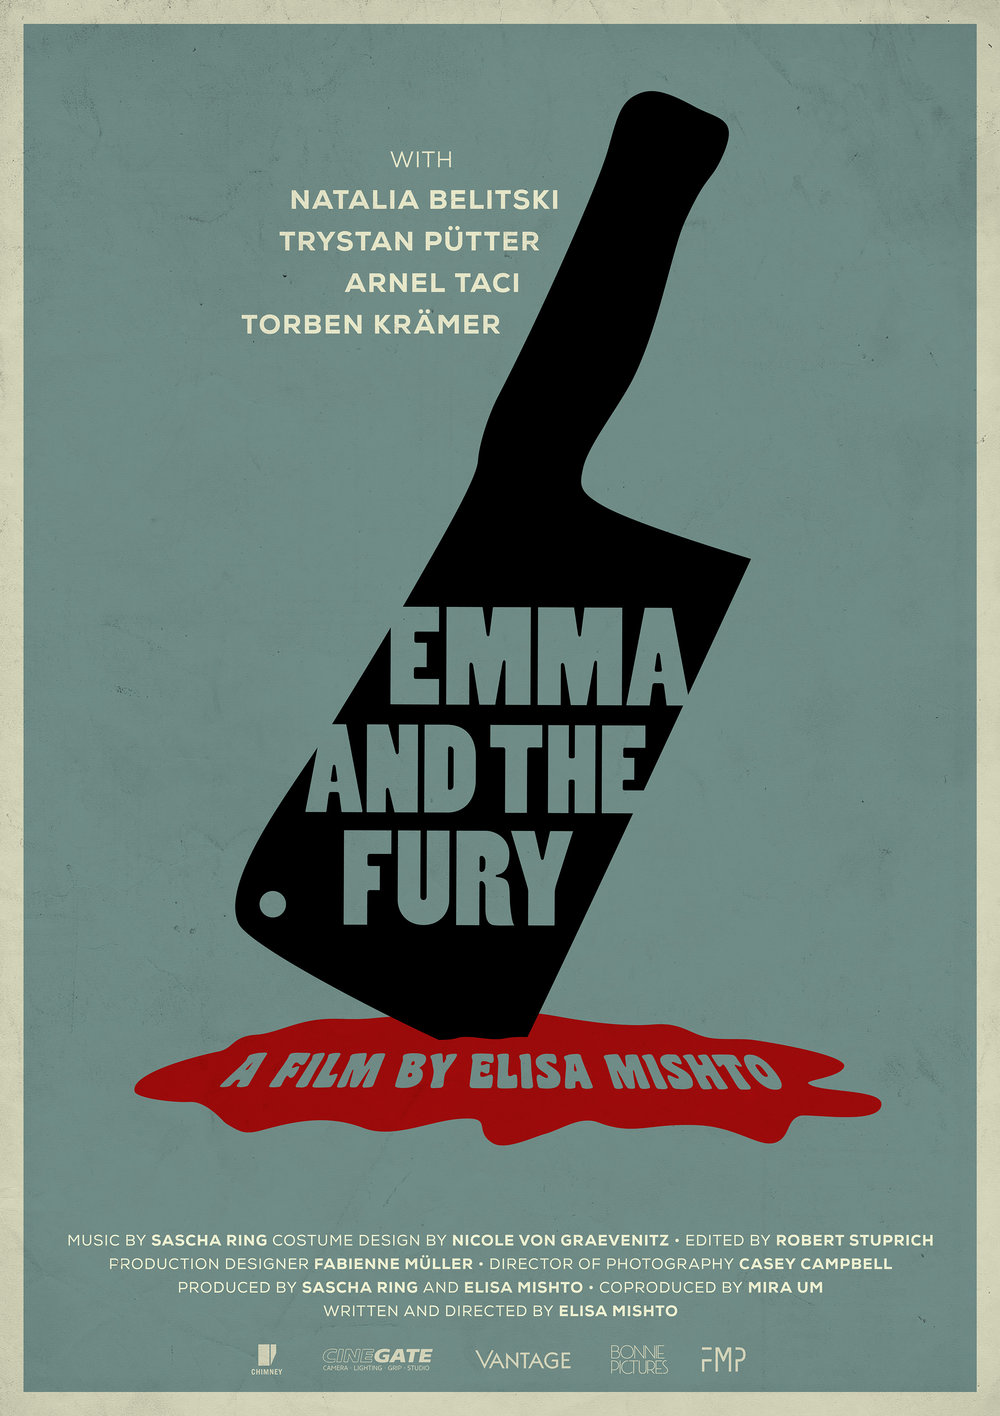 emma_and_the_fury_300dpi-01.jpg